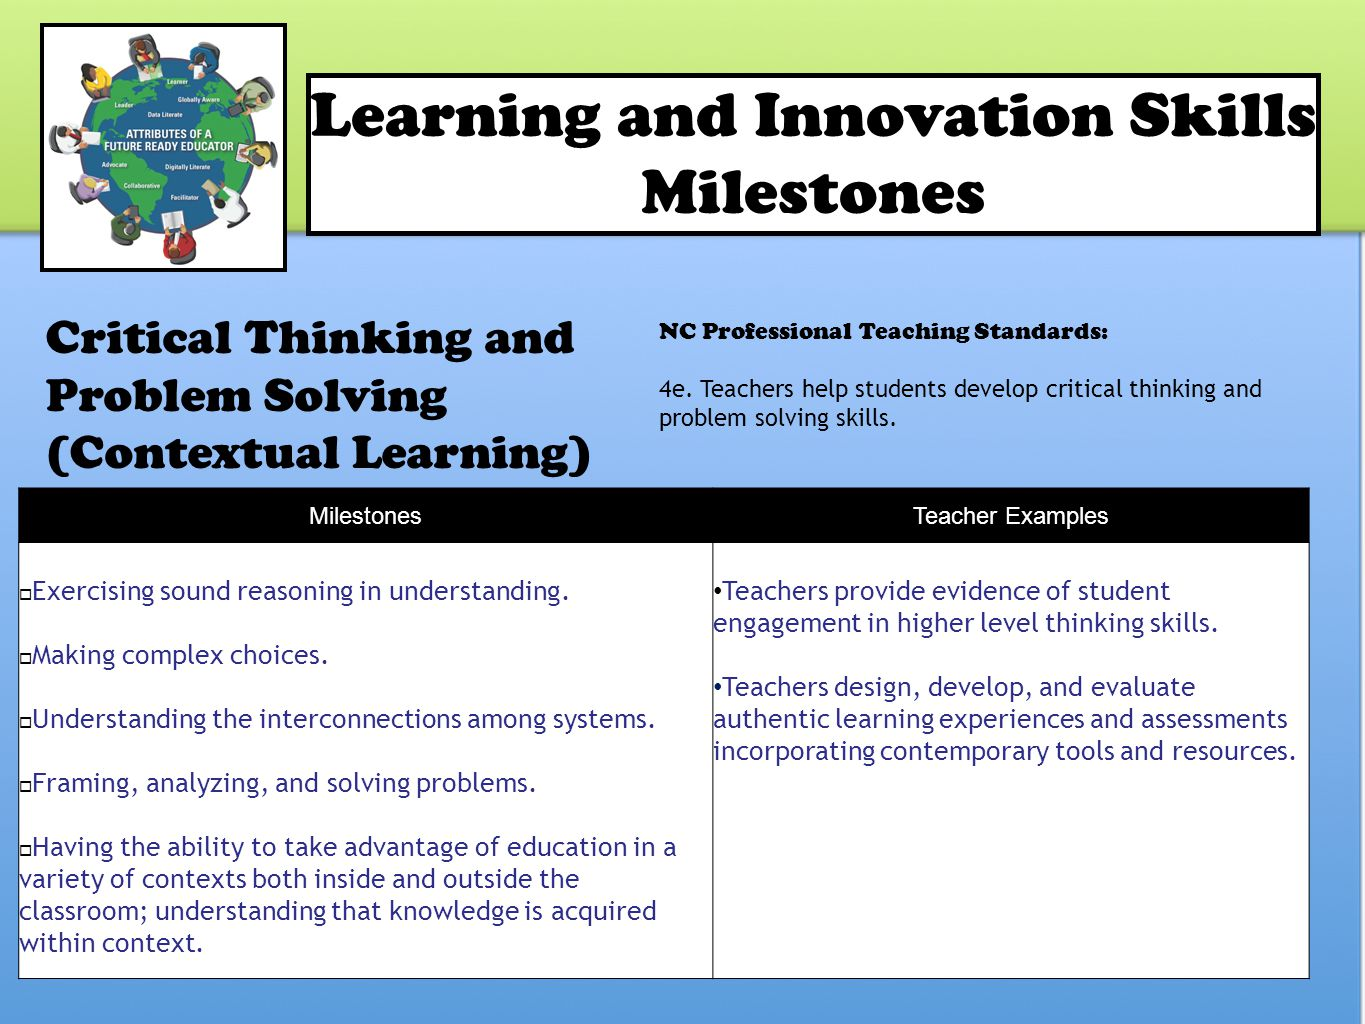 Learning and Innovation Skills Milestones